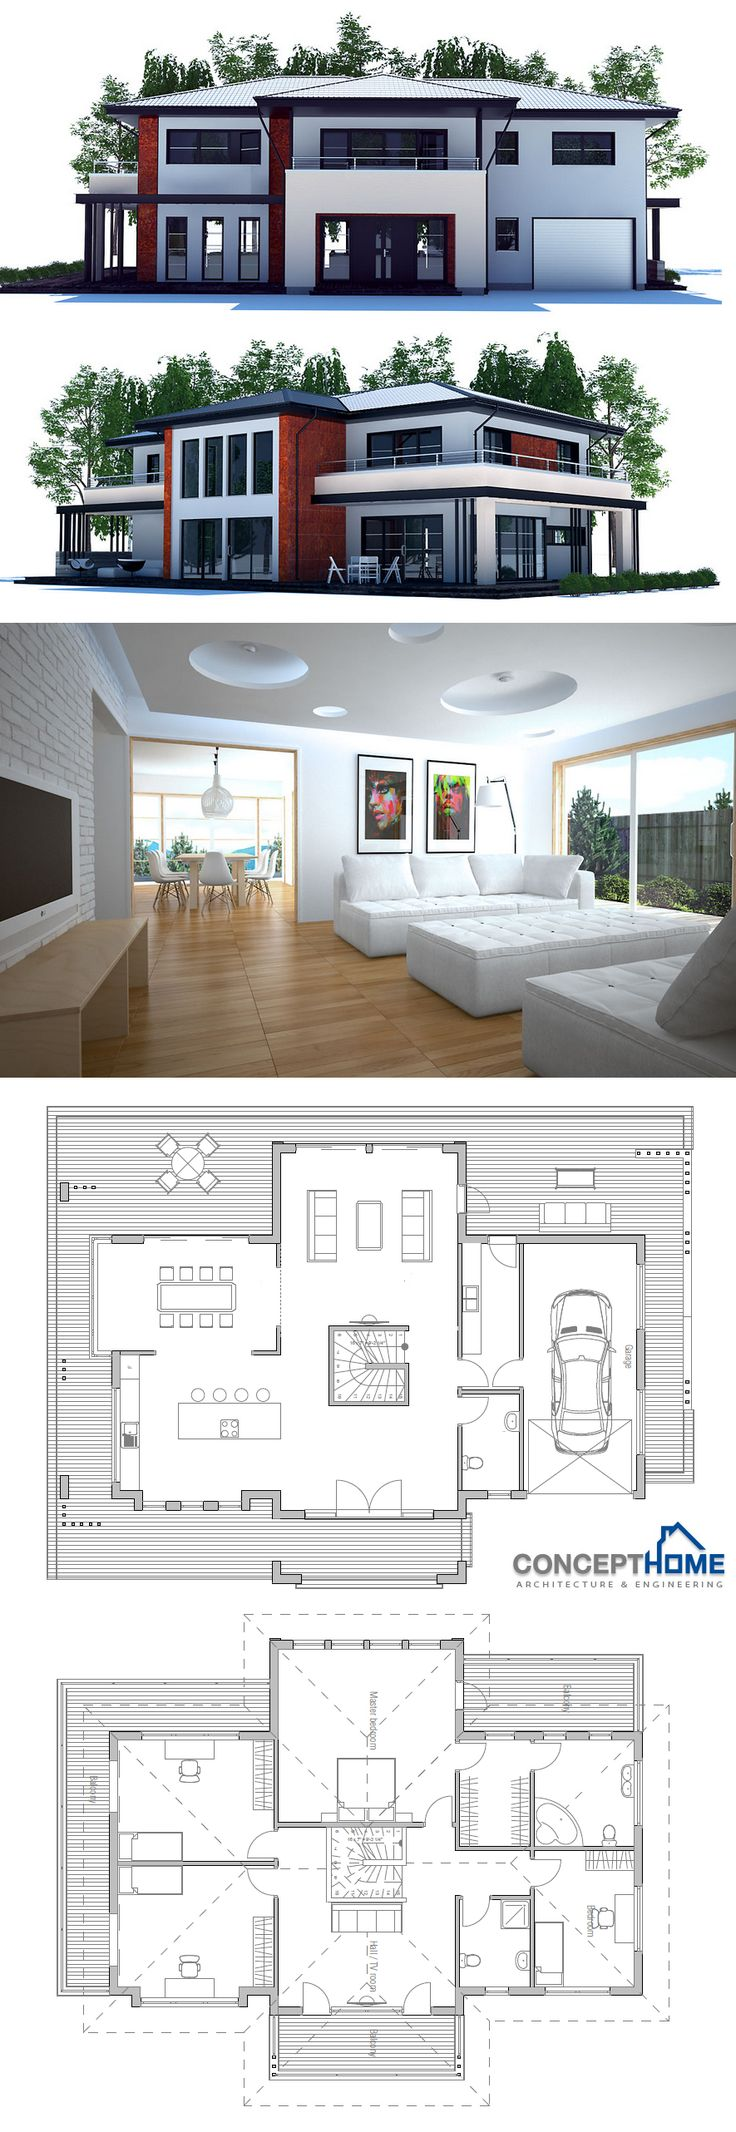 274 Best Images About Bahay Kubo On Pinterest House Design House Plans And Guest Houses